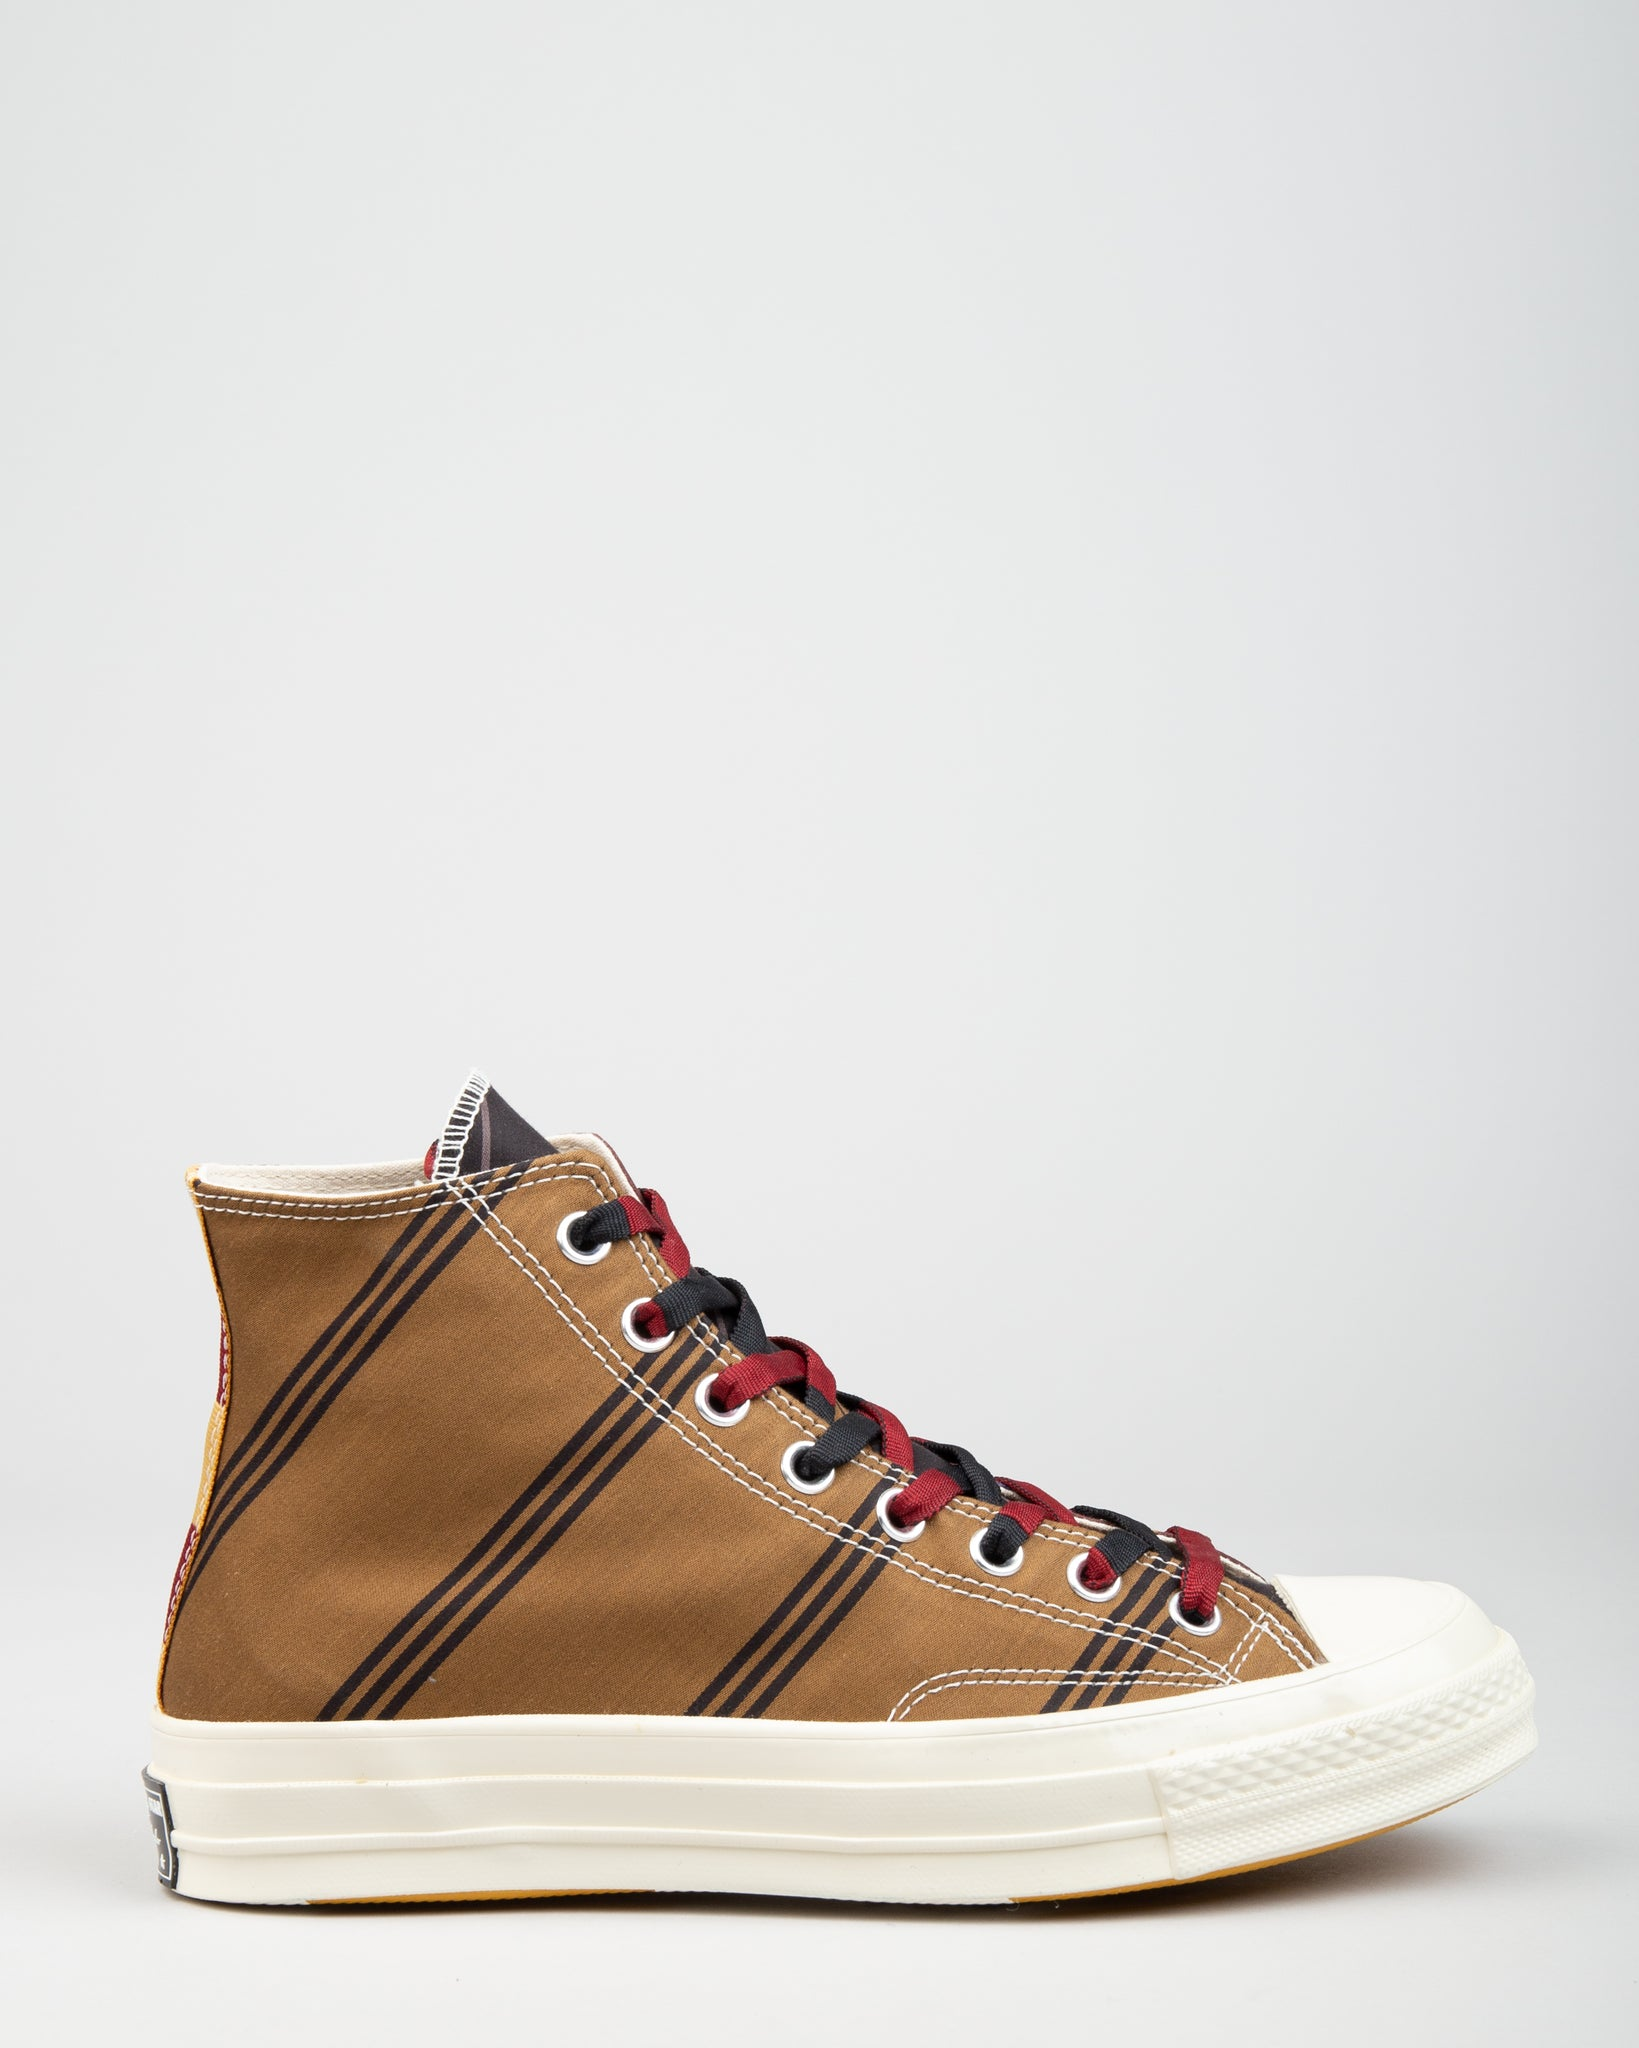 Chuck 70 HI Tan/Burgundy/Black